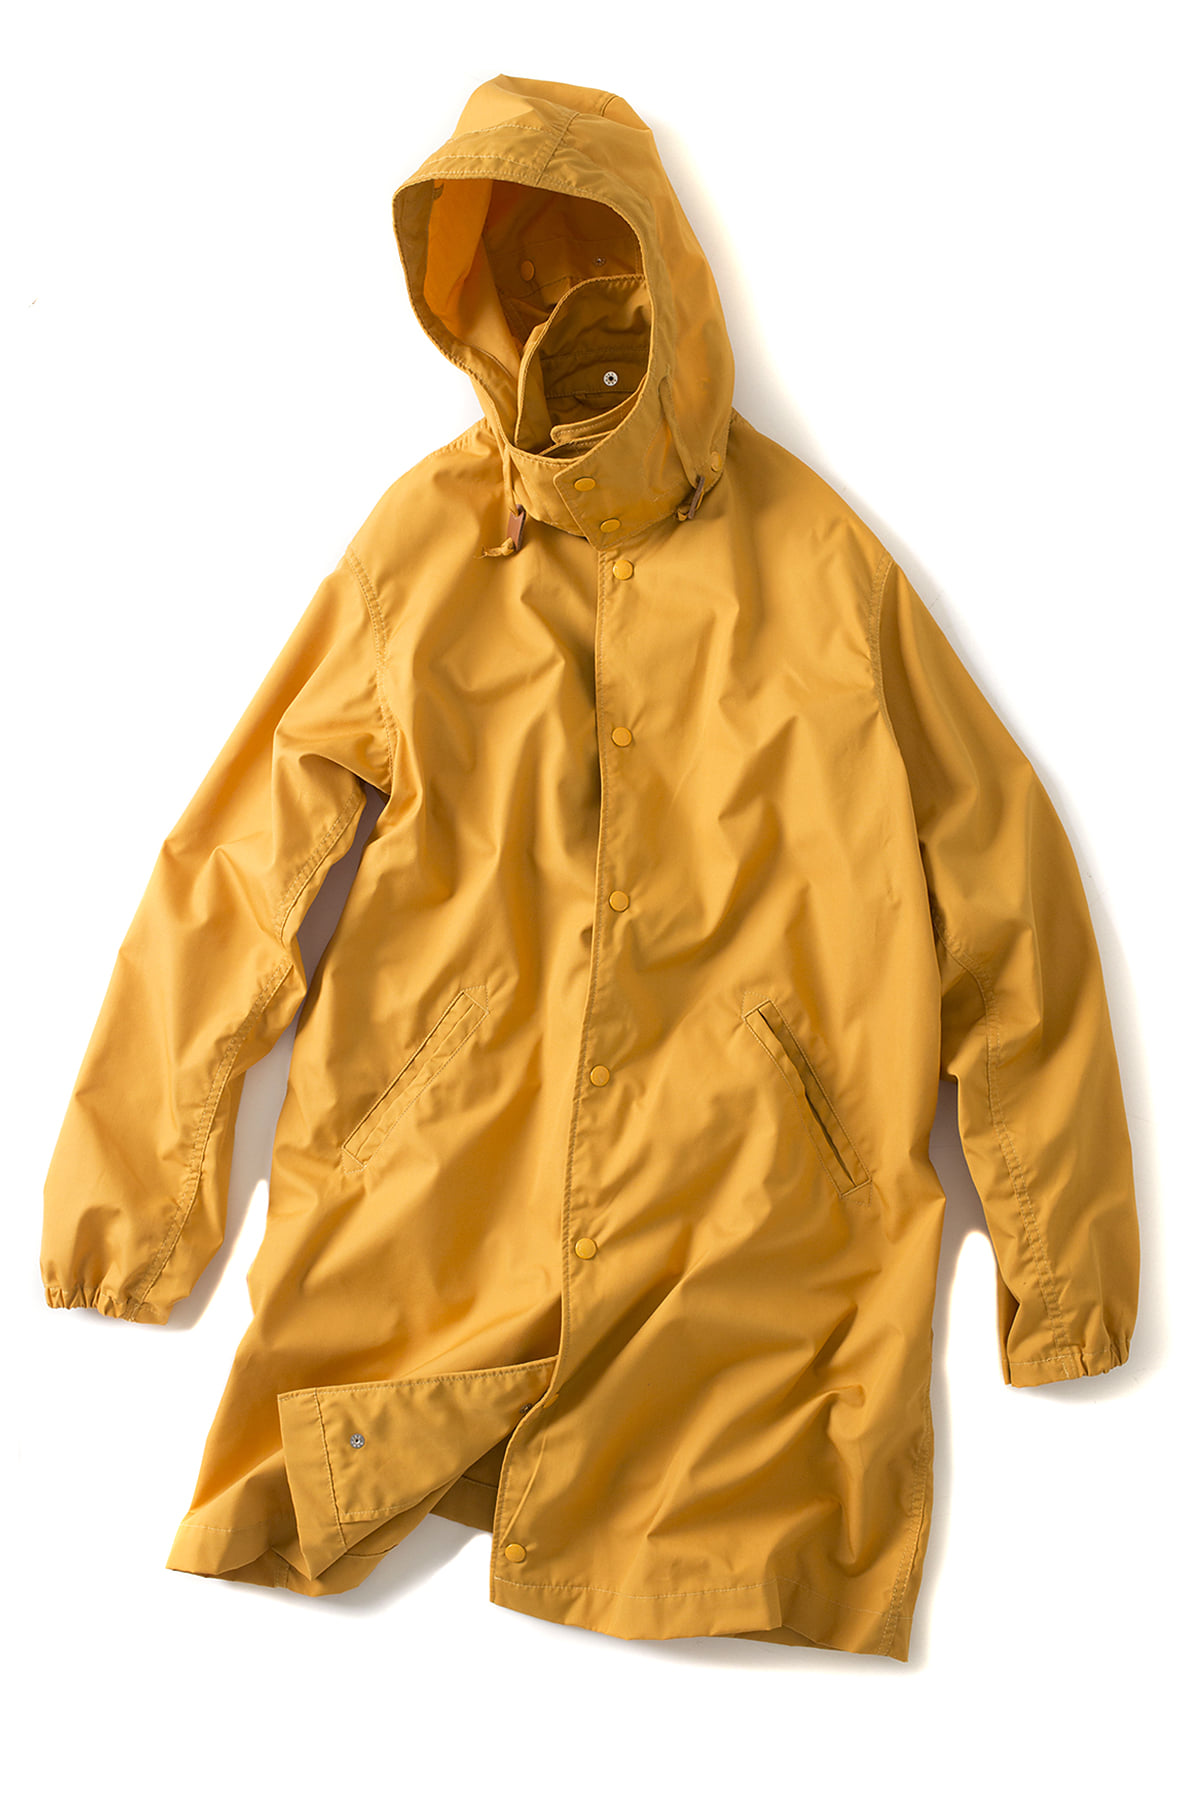 Engineered Garments : Ground Duster (Gold PC Poplin)